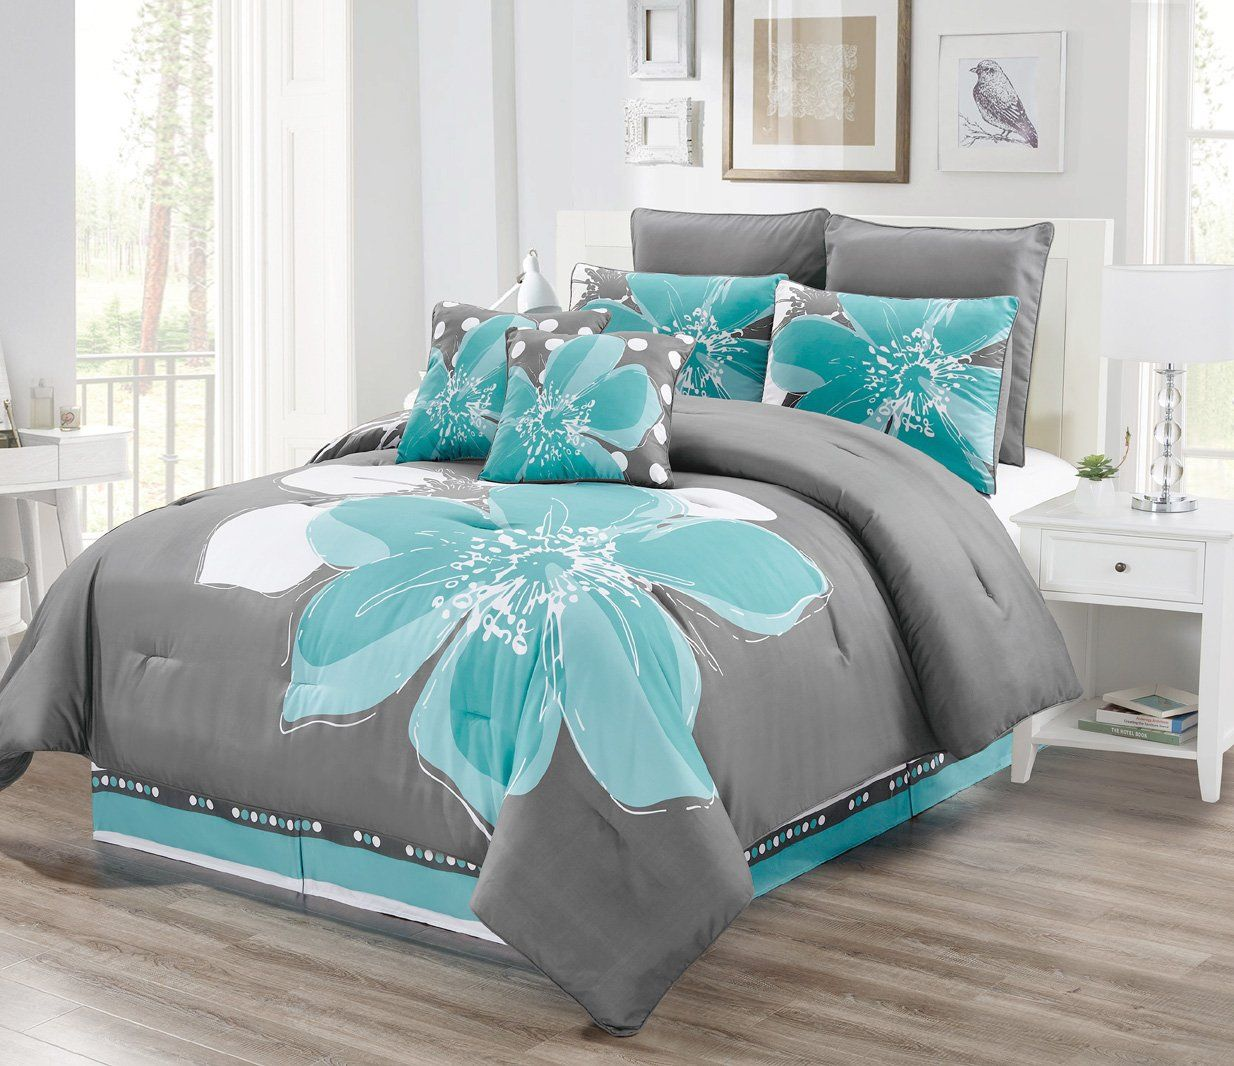 8 Piece Aqua Blue Grey White Floral Comforter Set Queen Size Bedding Accent Pillows Be Sure To Blue And Grey Bedding Blue Comforter Sets Comforter Sets